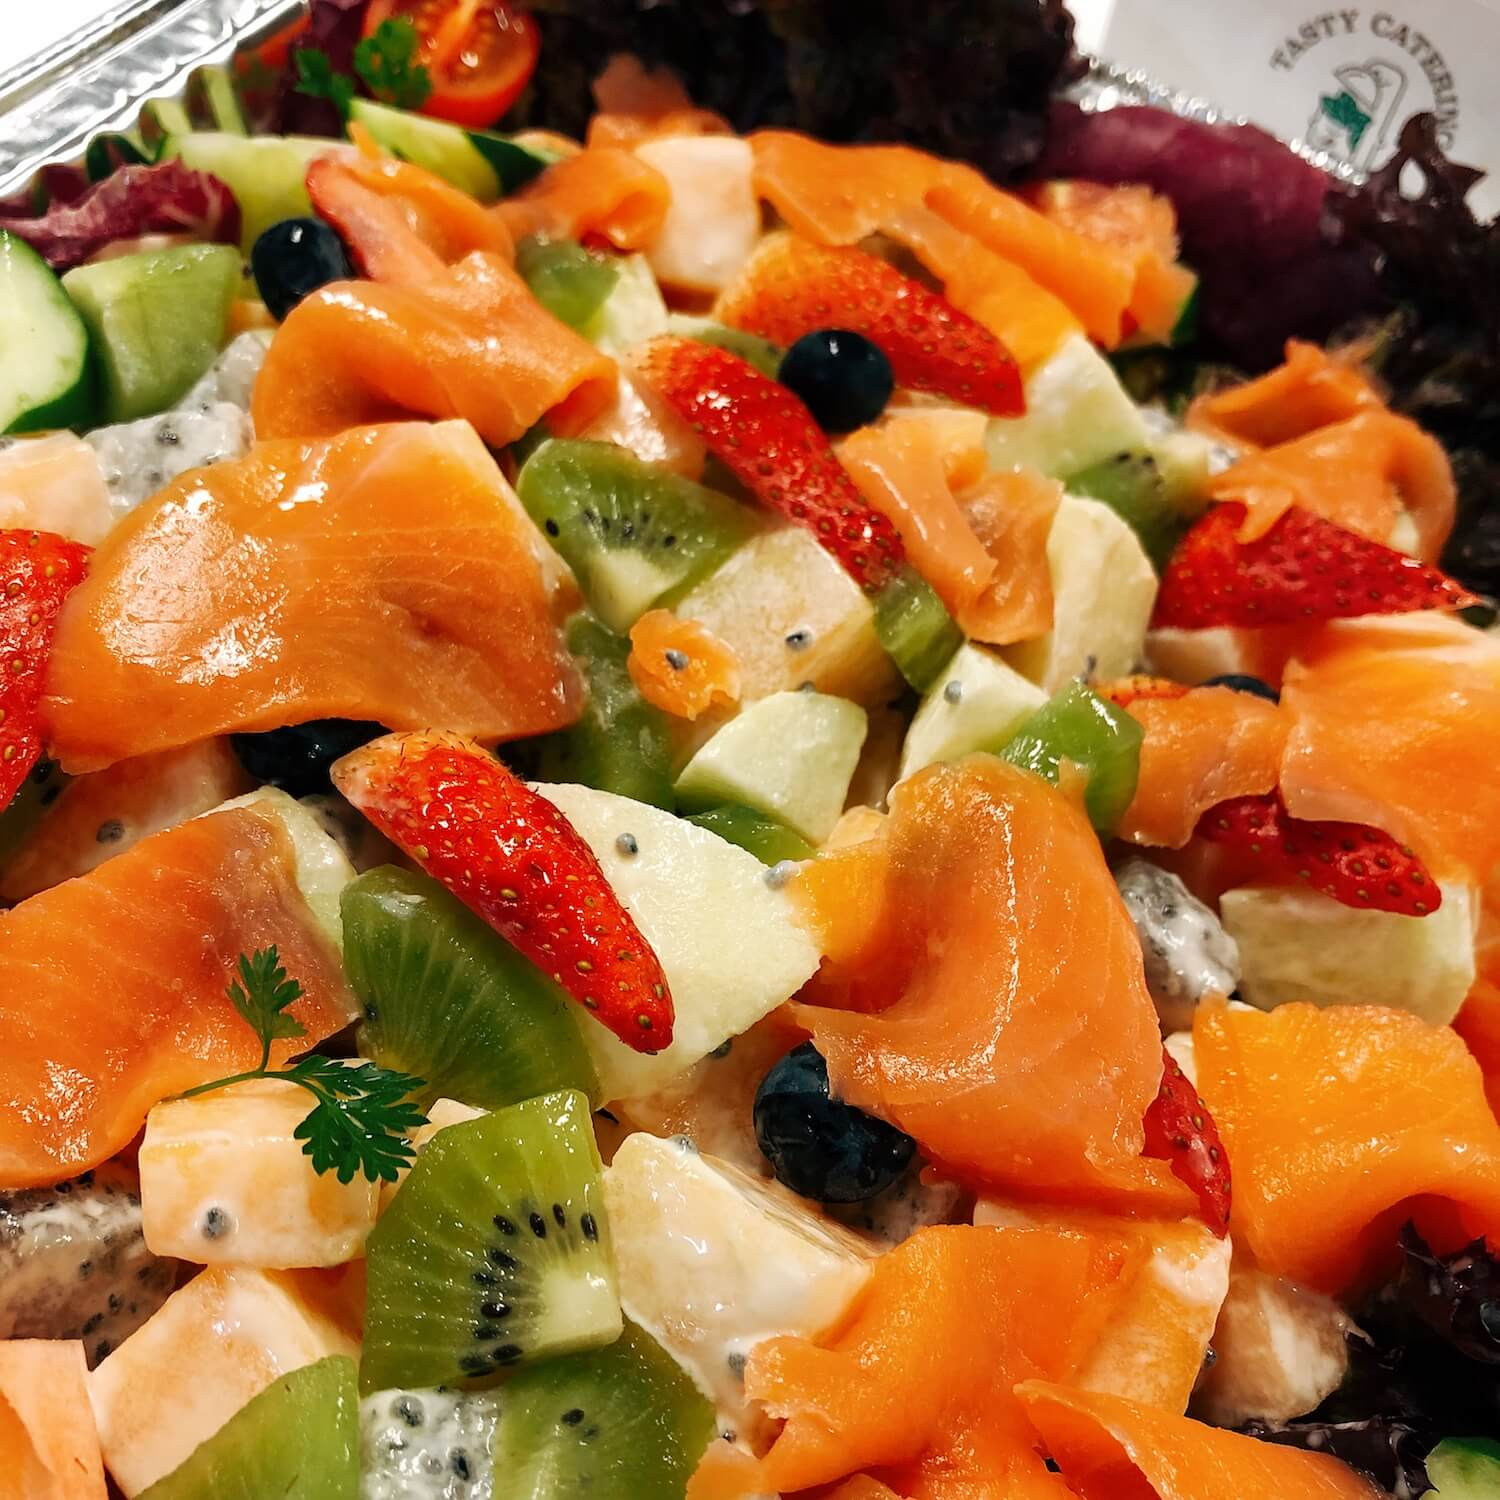 煙三文魚鮮果沙律 Fresh Fruit Salad with Smoked Salmon